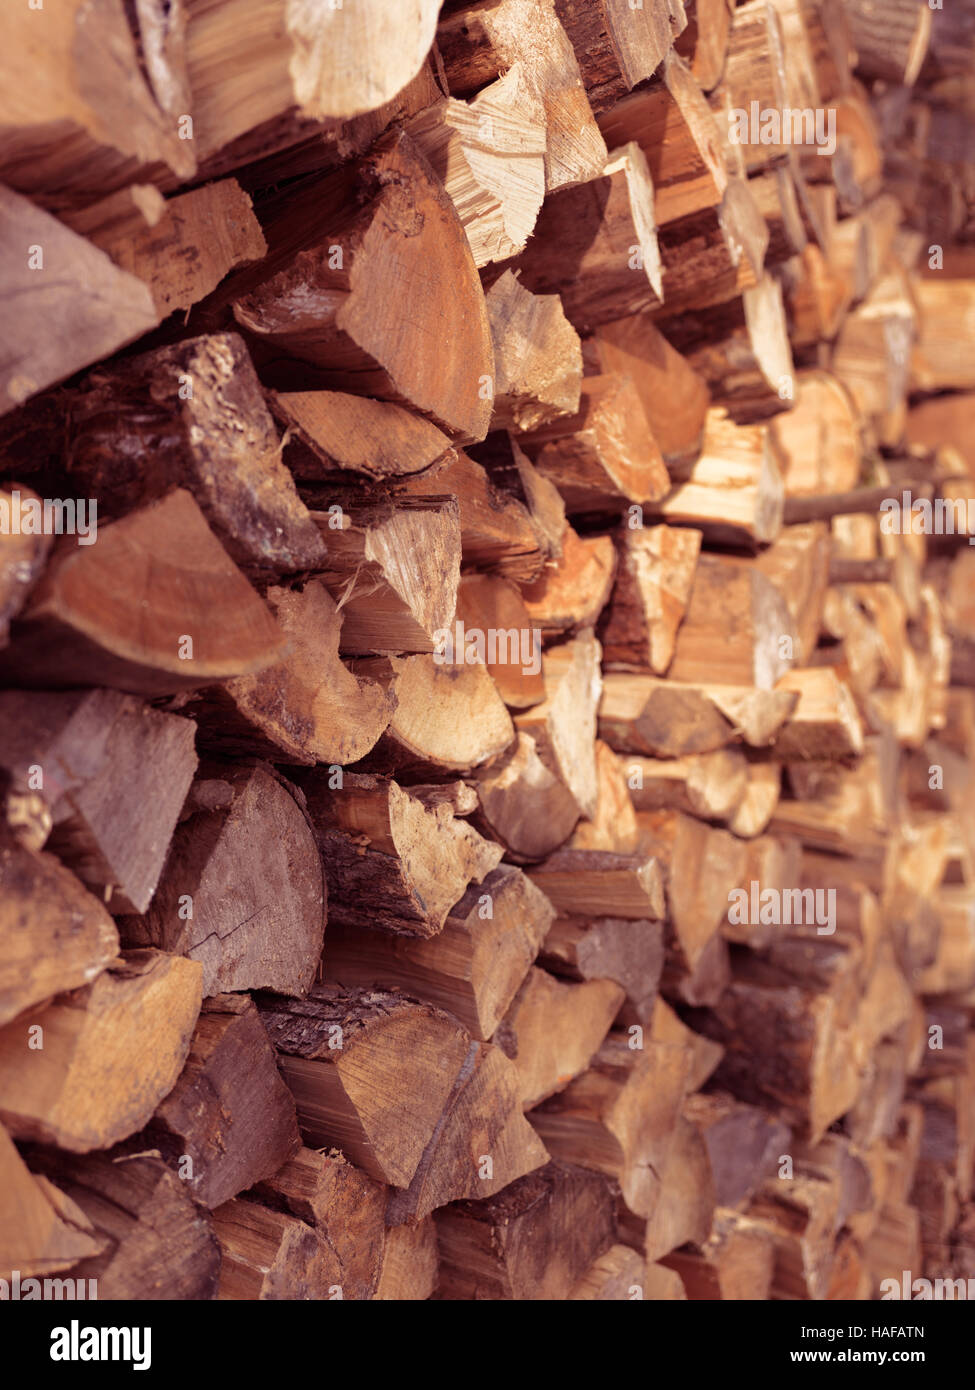 Stacked firewood supply in warm sunset light background texture - Stock Image